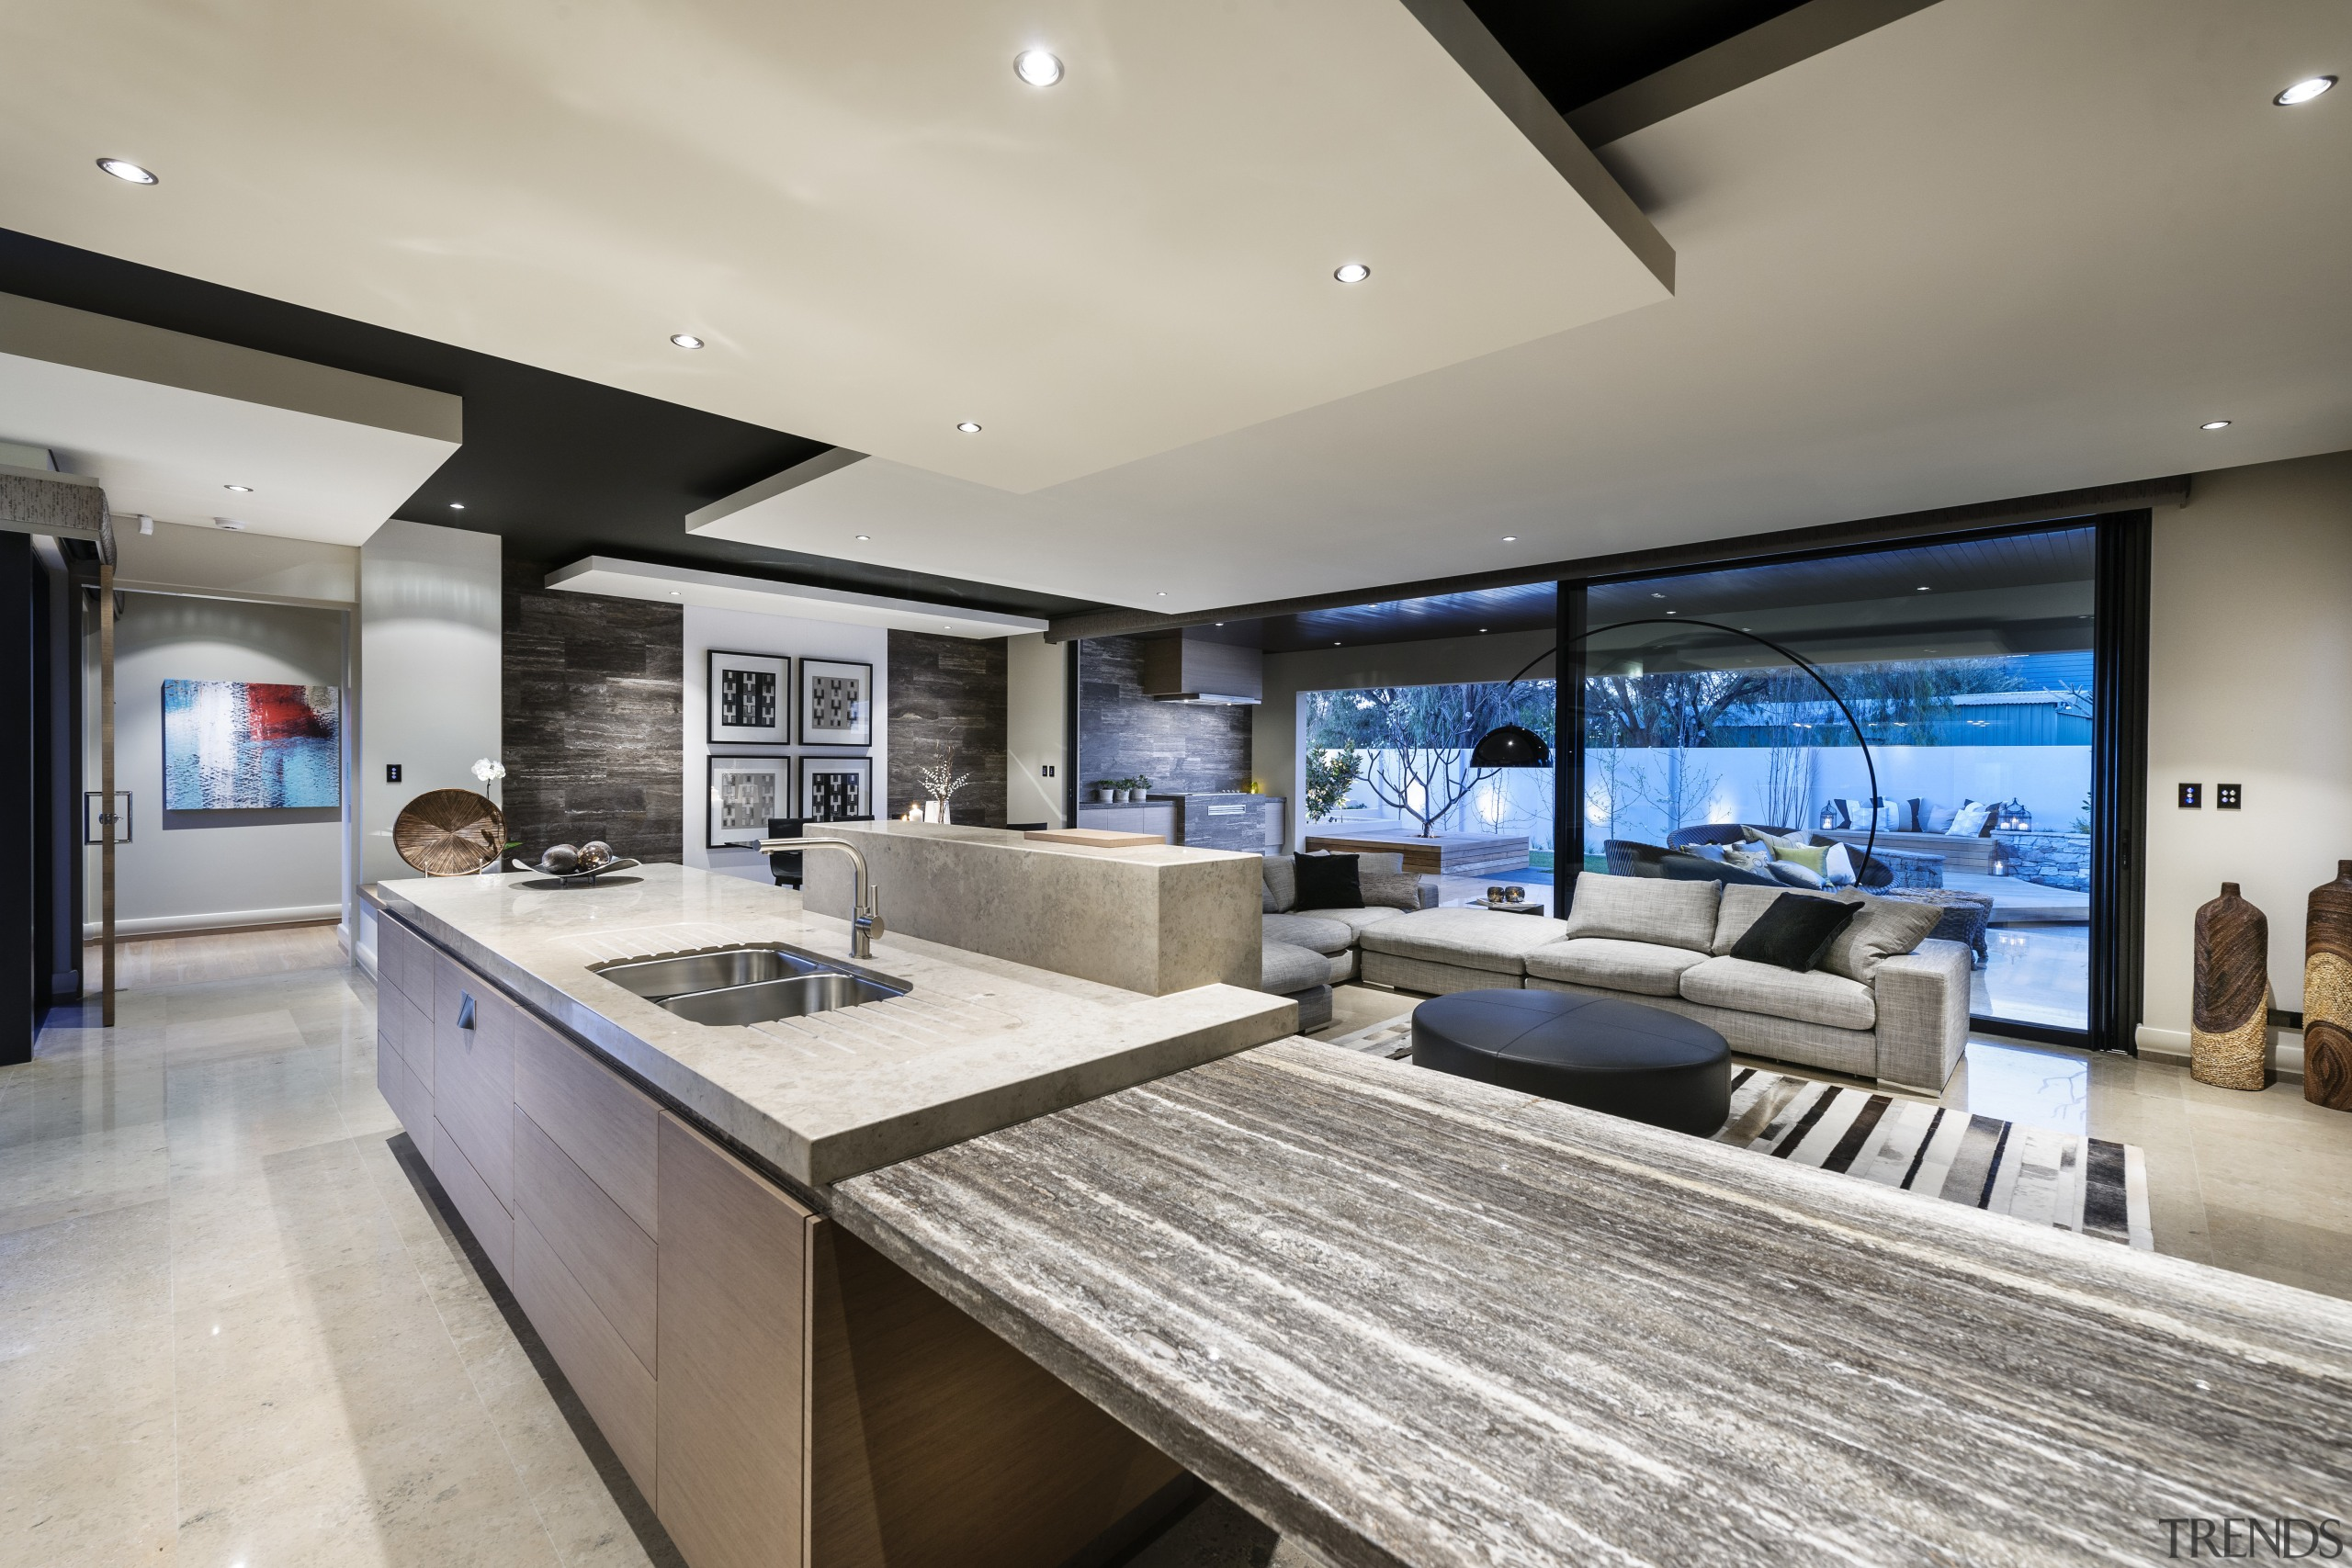 Kitchen connects with living spaces by shared palette countertop, estate, interior design, kitchen, living room, real estate, gray